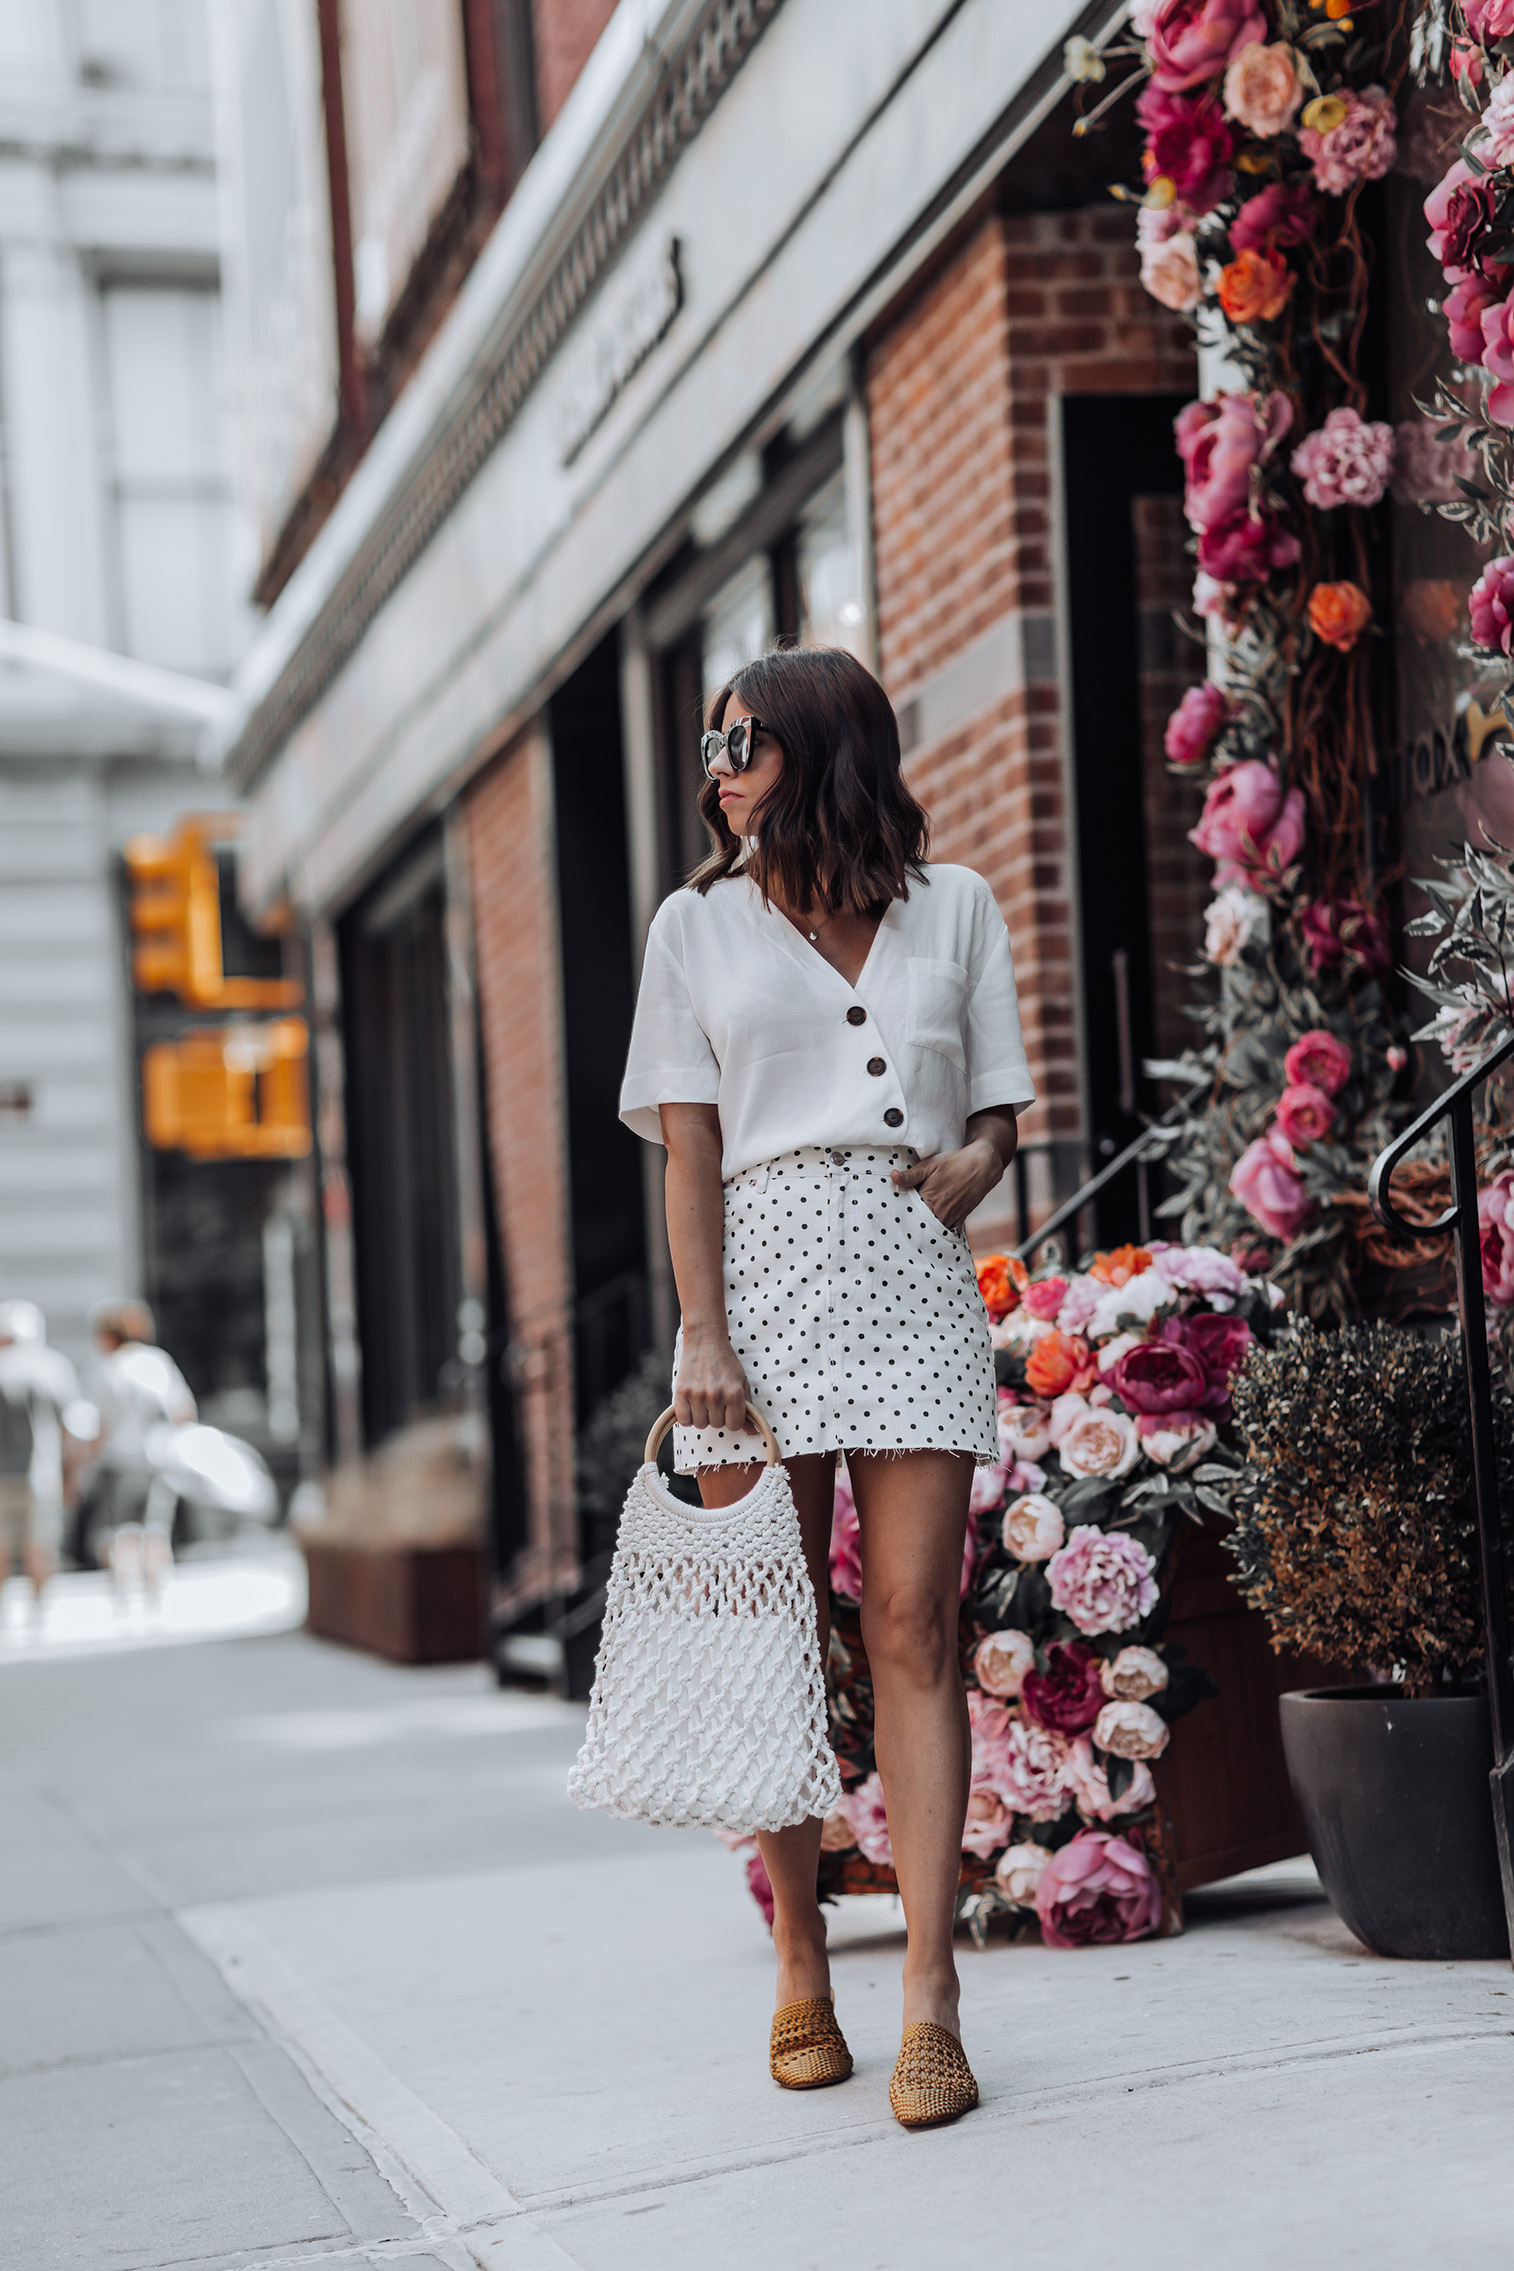 All white |Topshop Polka Dot Skirt | Topshop Blouse | String Shopper Bag | Woven Mules| Straw handbag Trend | Streetstyle blog #streetstyle #ootd #liketkit #topshop